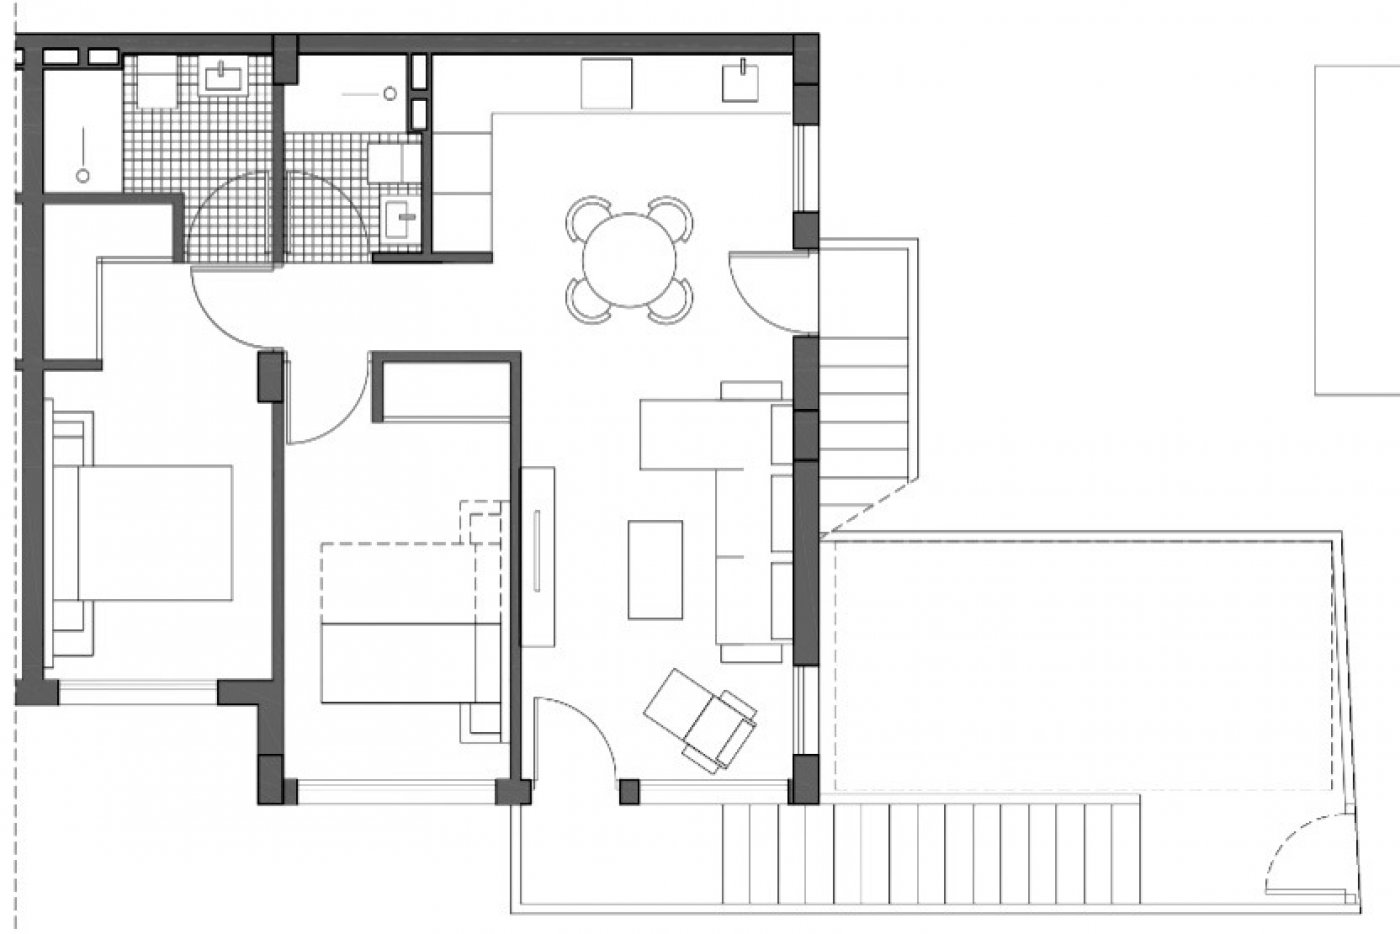 Gallery Image 2 of New build top floor apartment with 55 m2 solarium only 7 min walk from the beaches